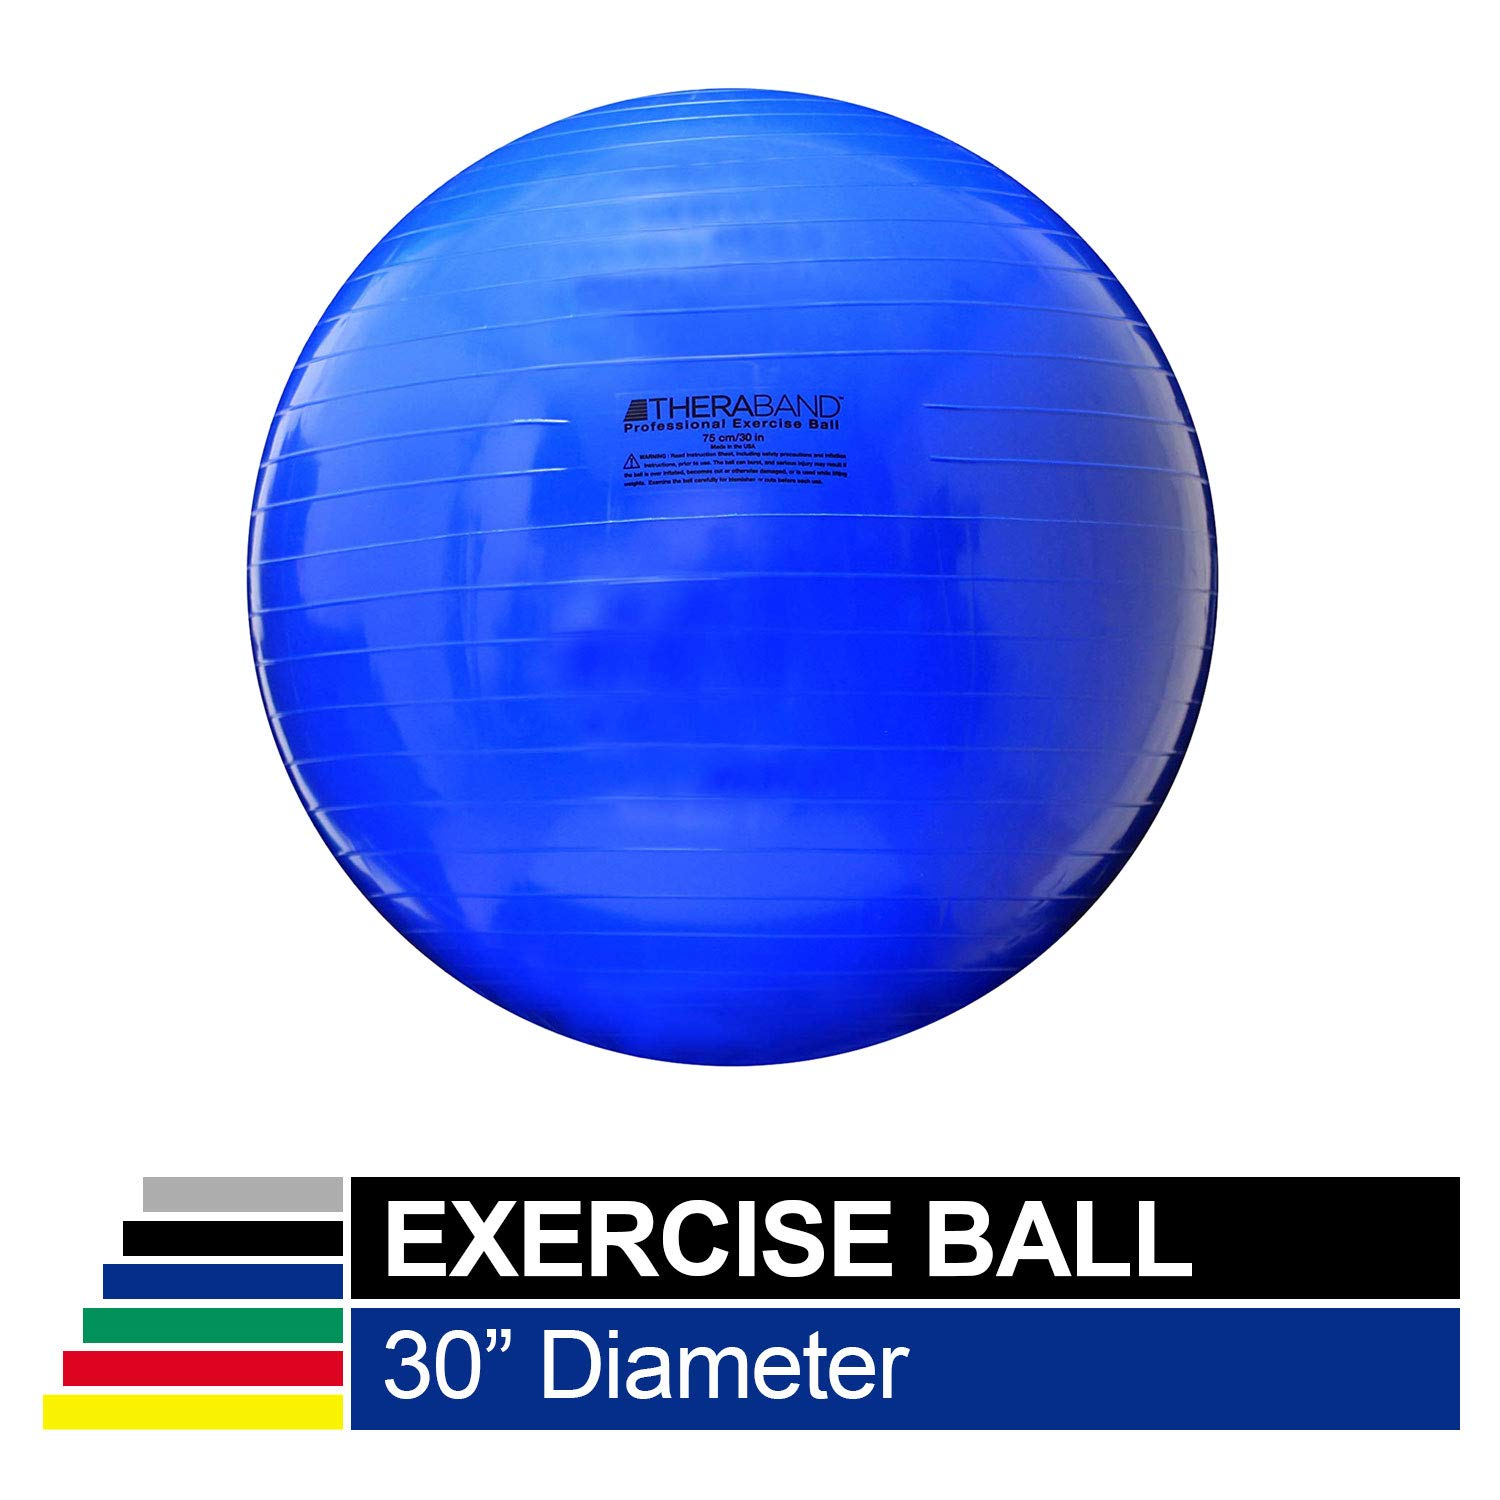 TheraBand Exercise Ball, Stability Ball with 75 cm Diameter for Athletes 6 2 to 6 8 Tall, Standard Fitness Ball for Posture, Balance, Yoga, Pilates, Core, Rehab, Blue